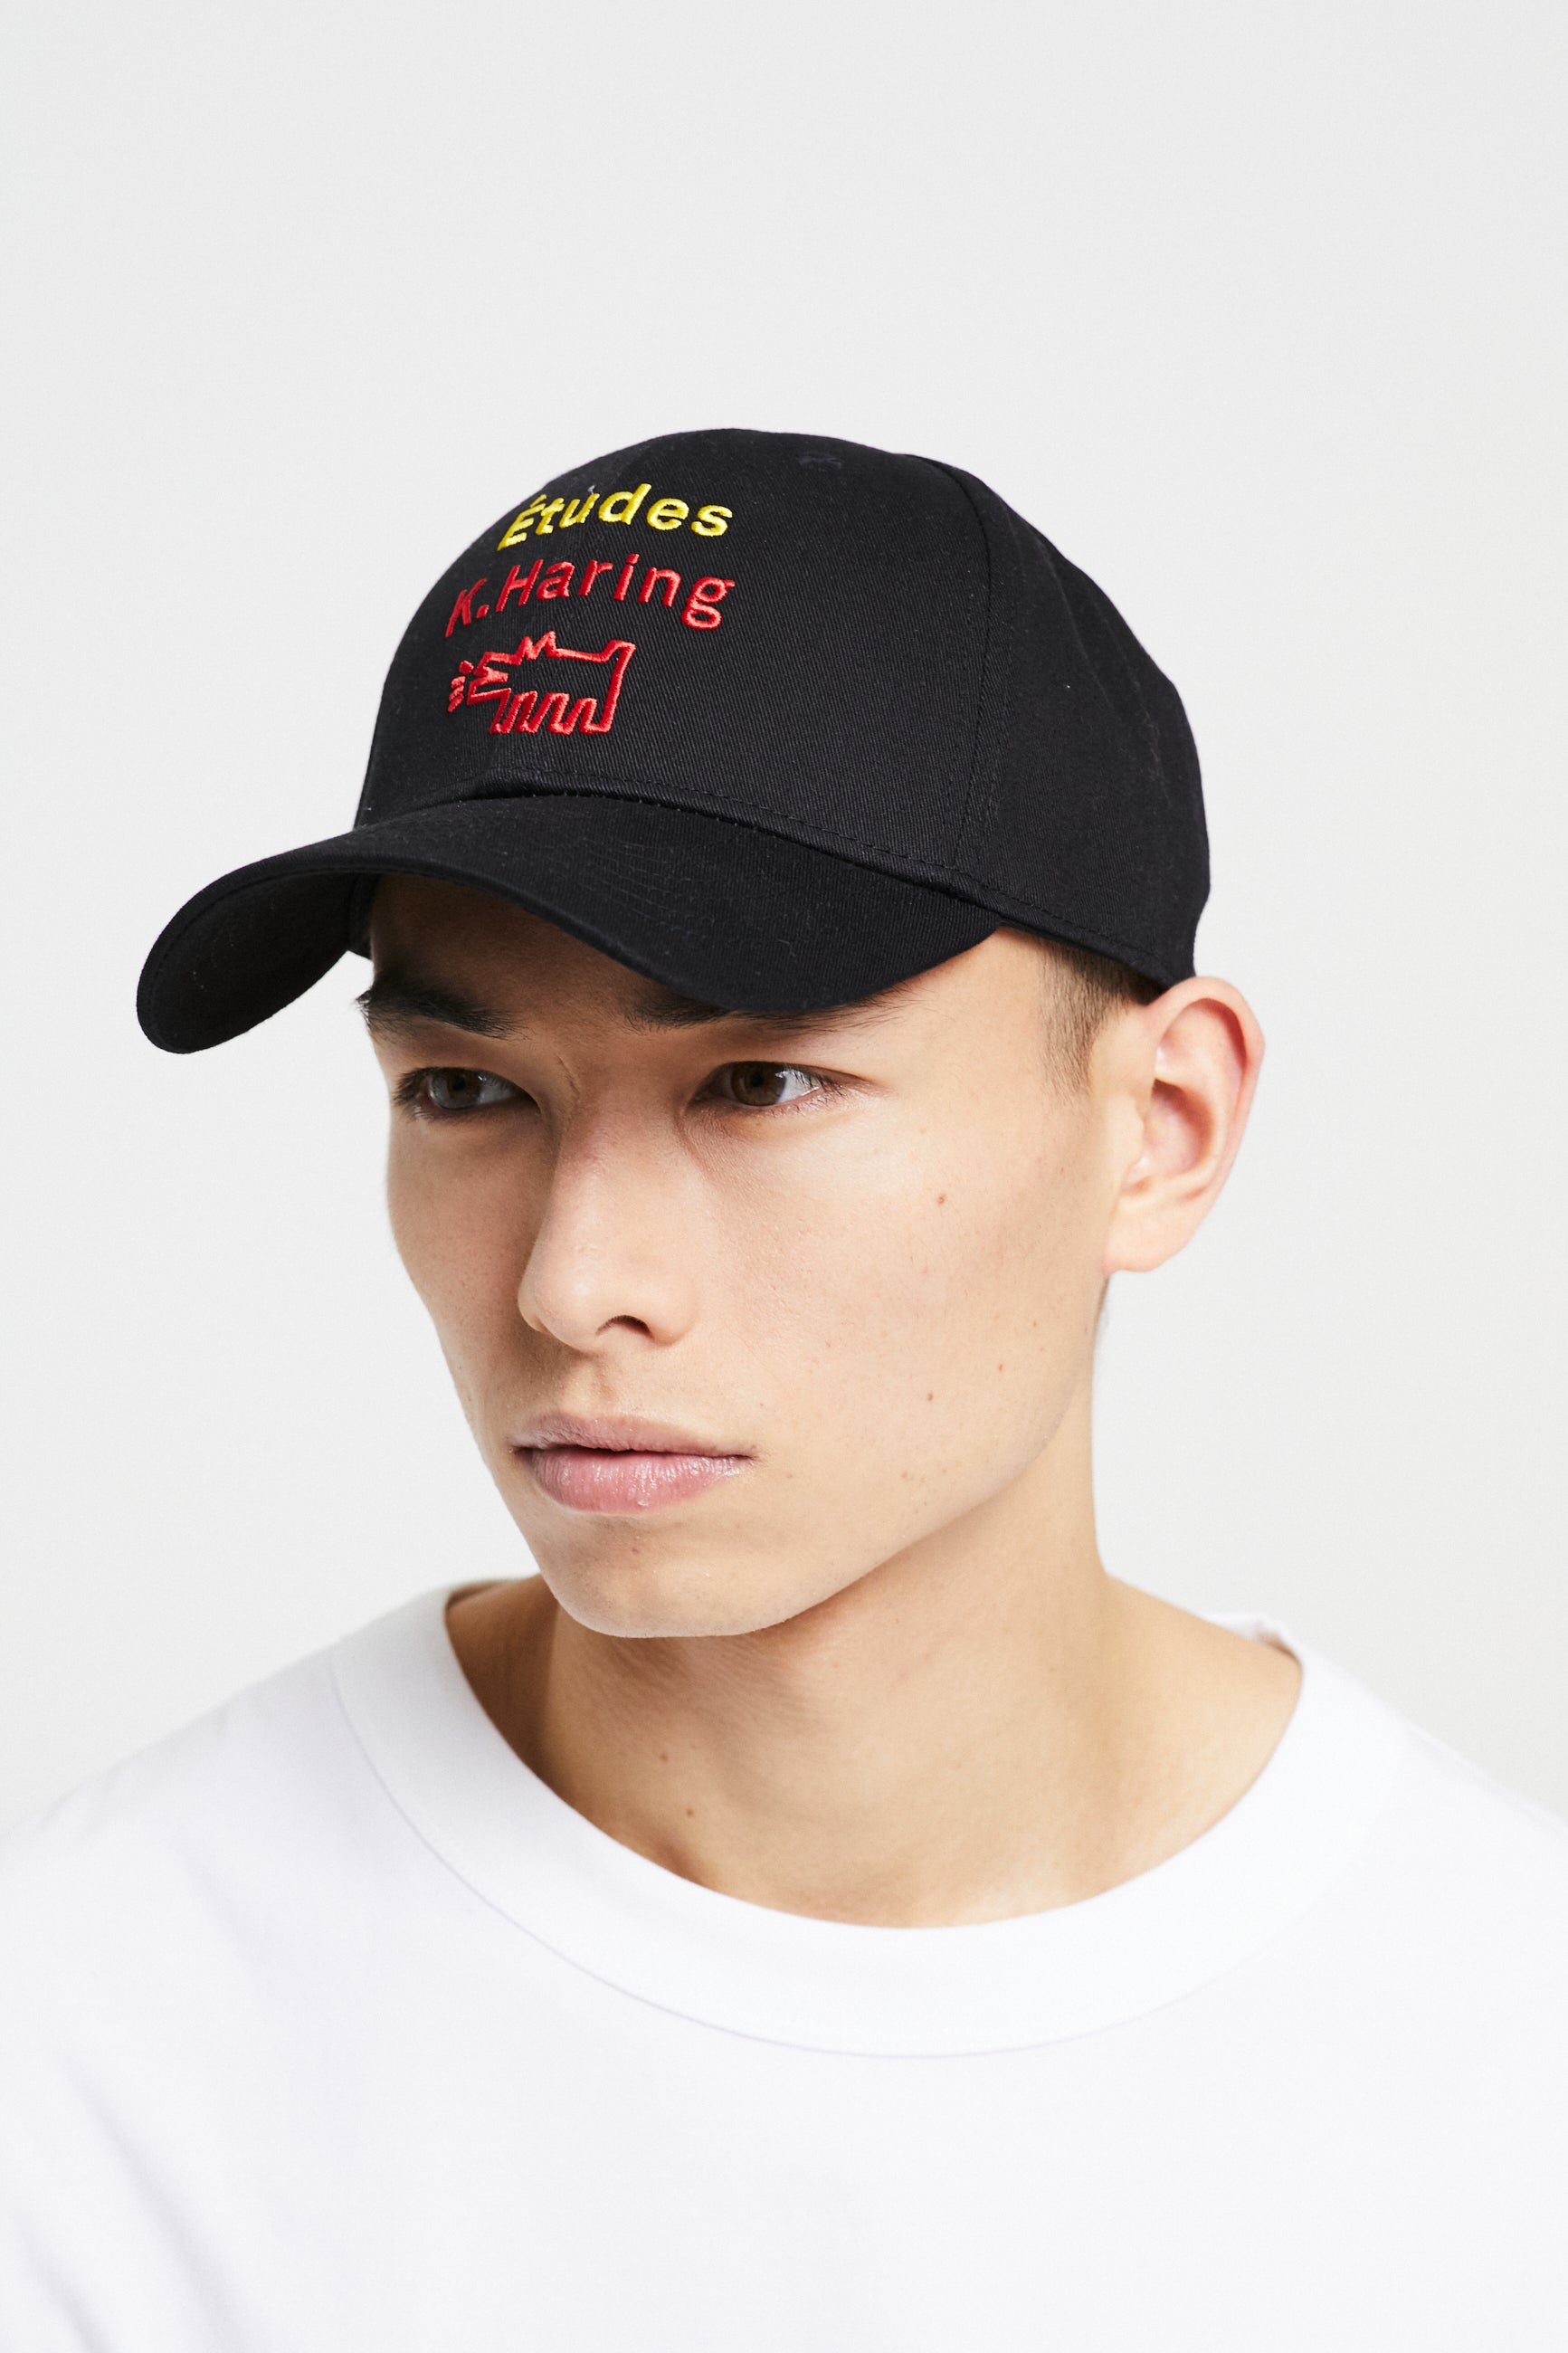 Études Cloud Keith Haring Black Hat 2